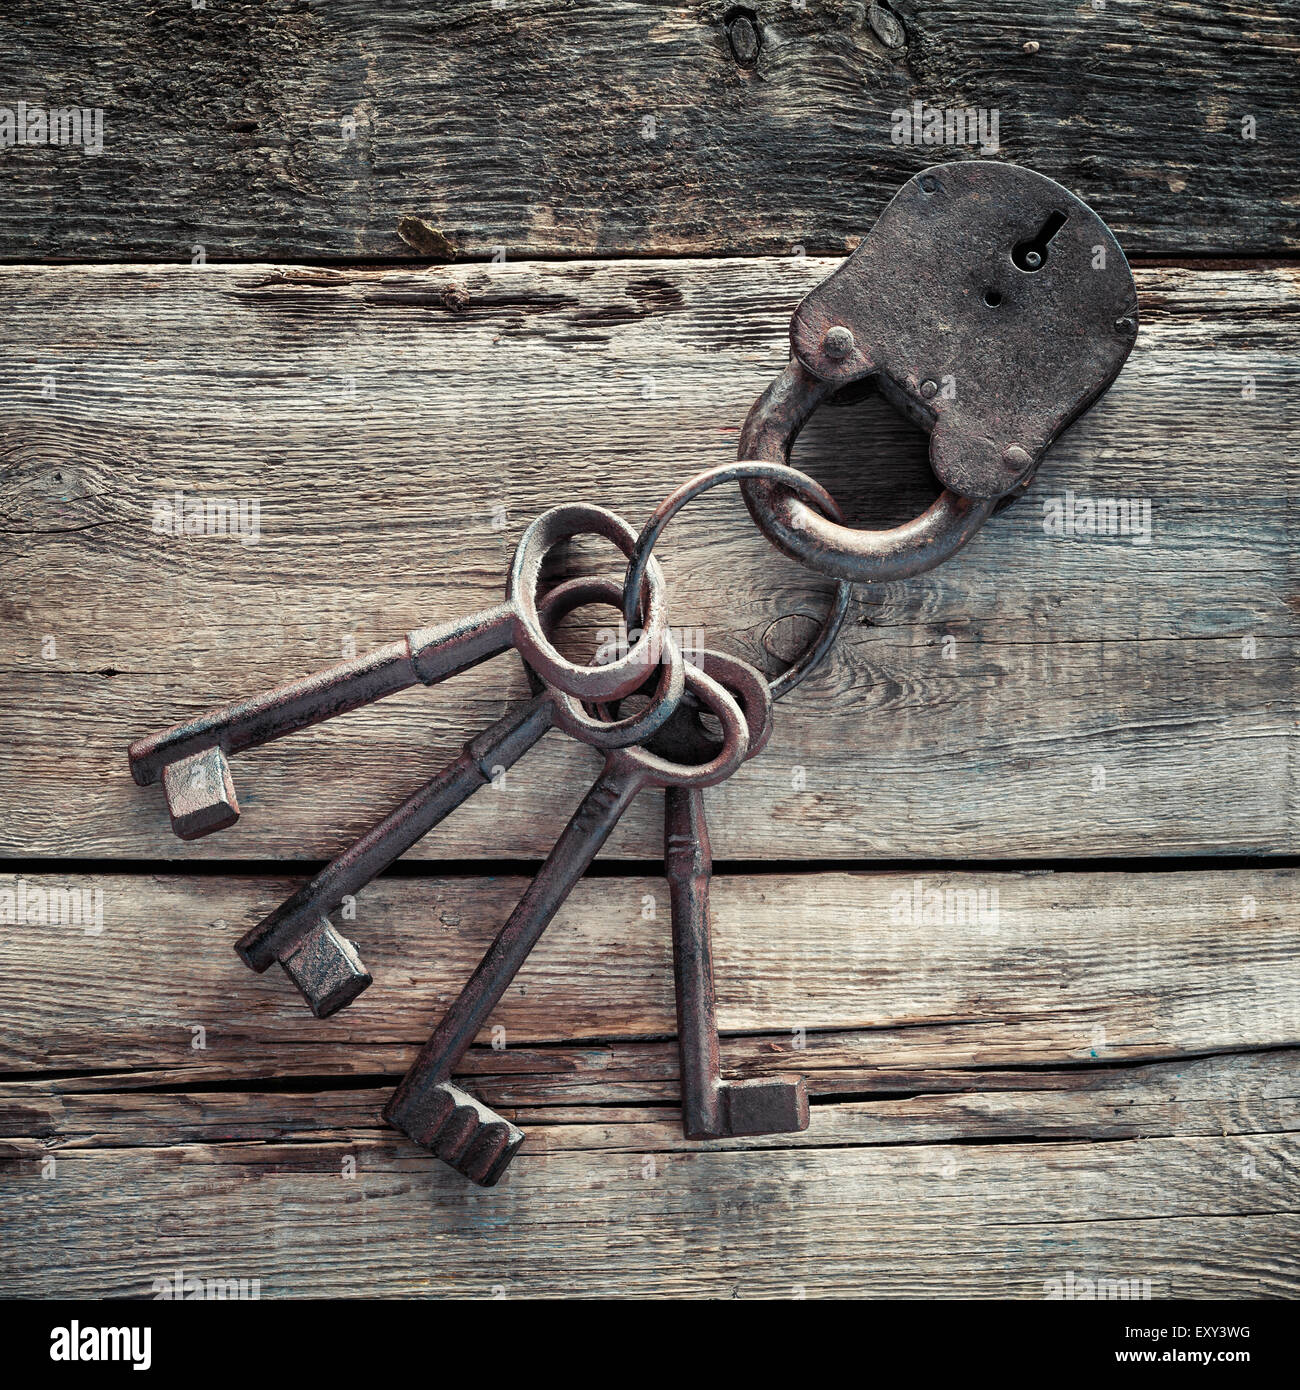 Old rusty lock with keys on wooden background. - Stock Image